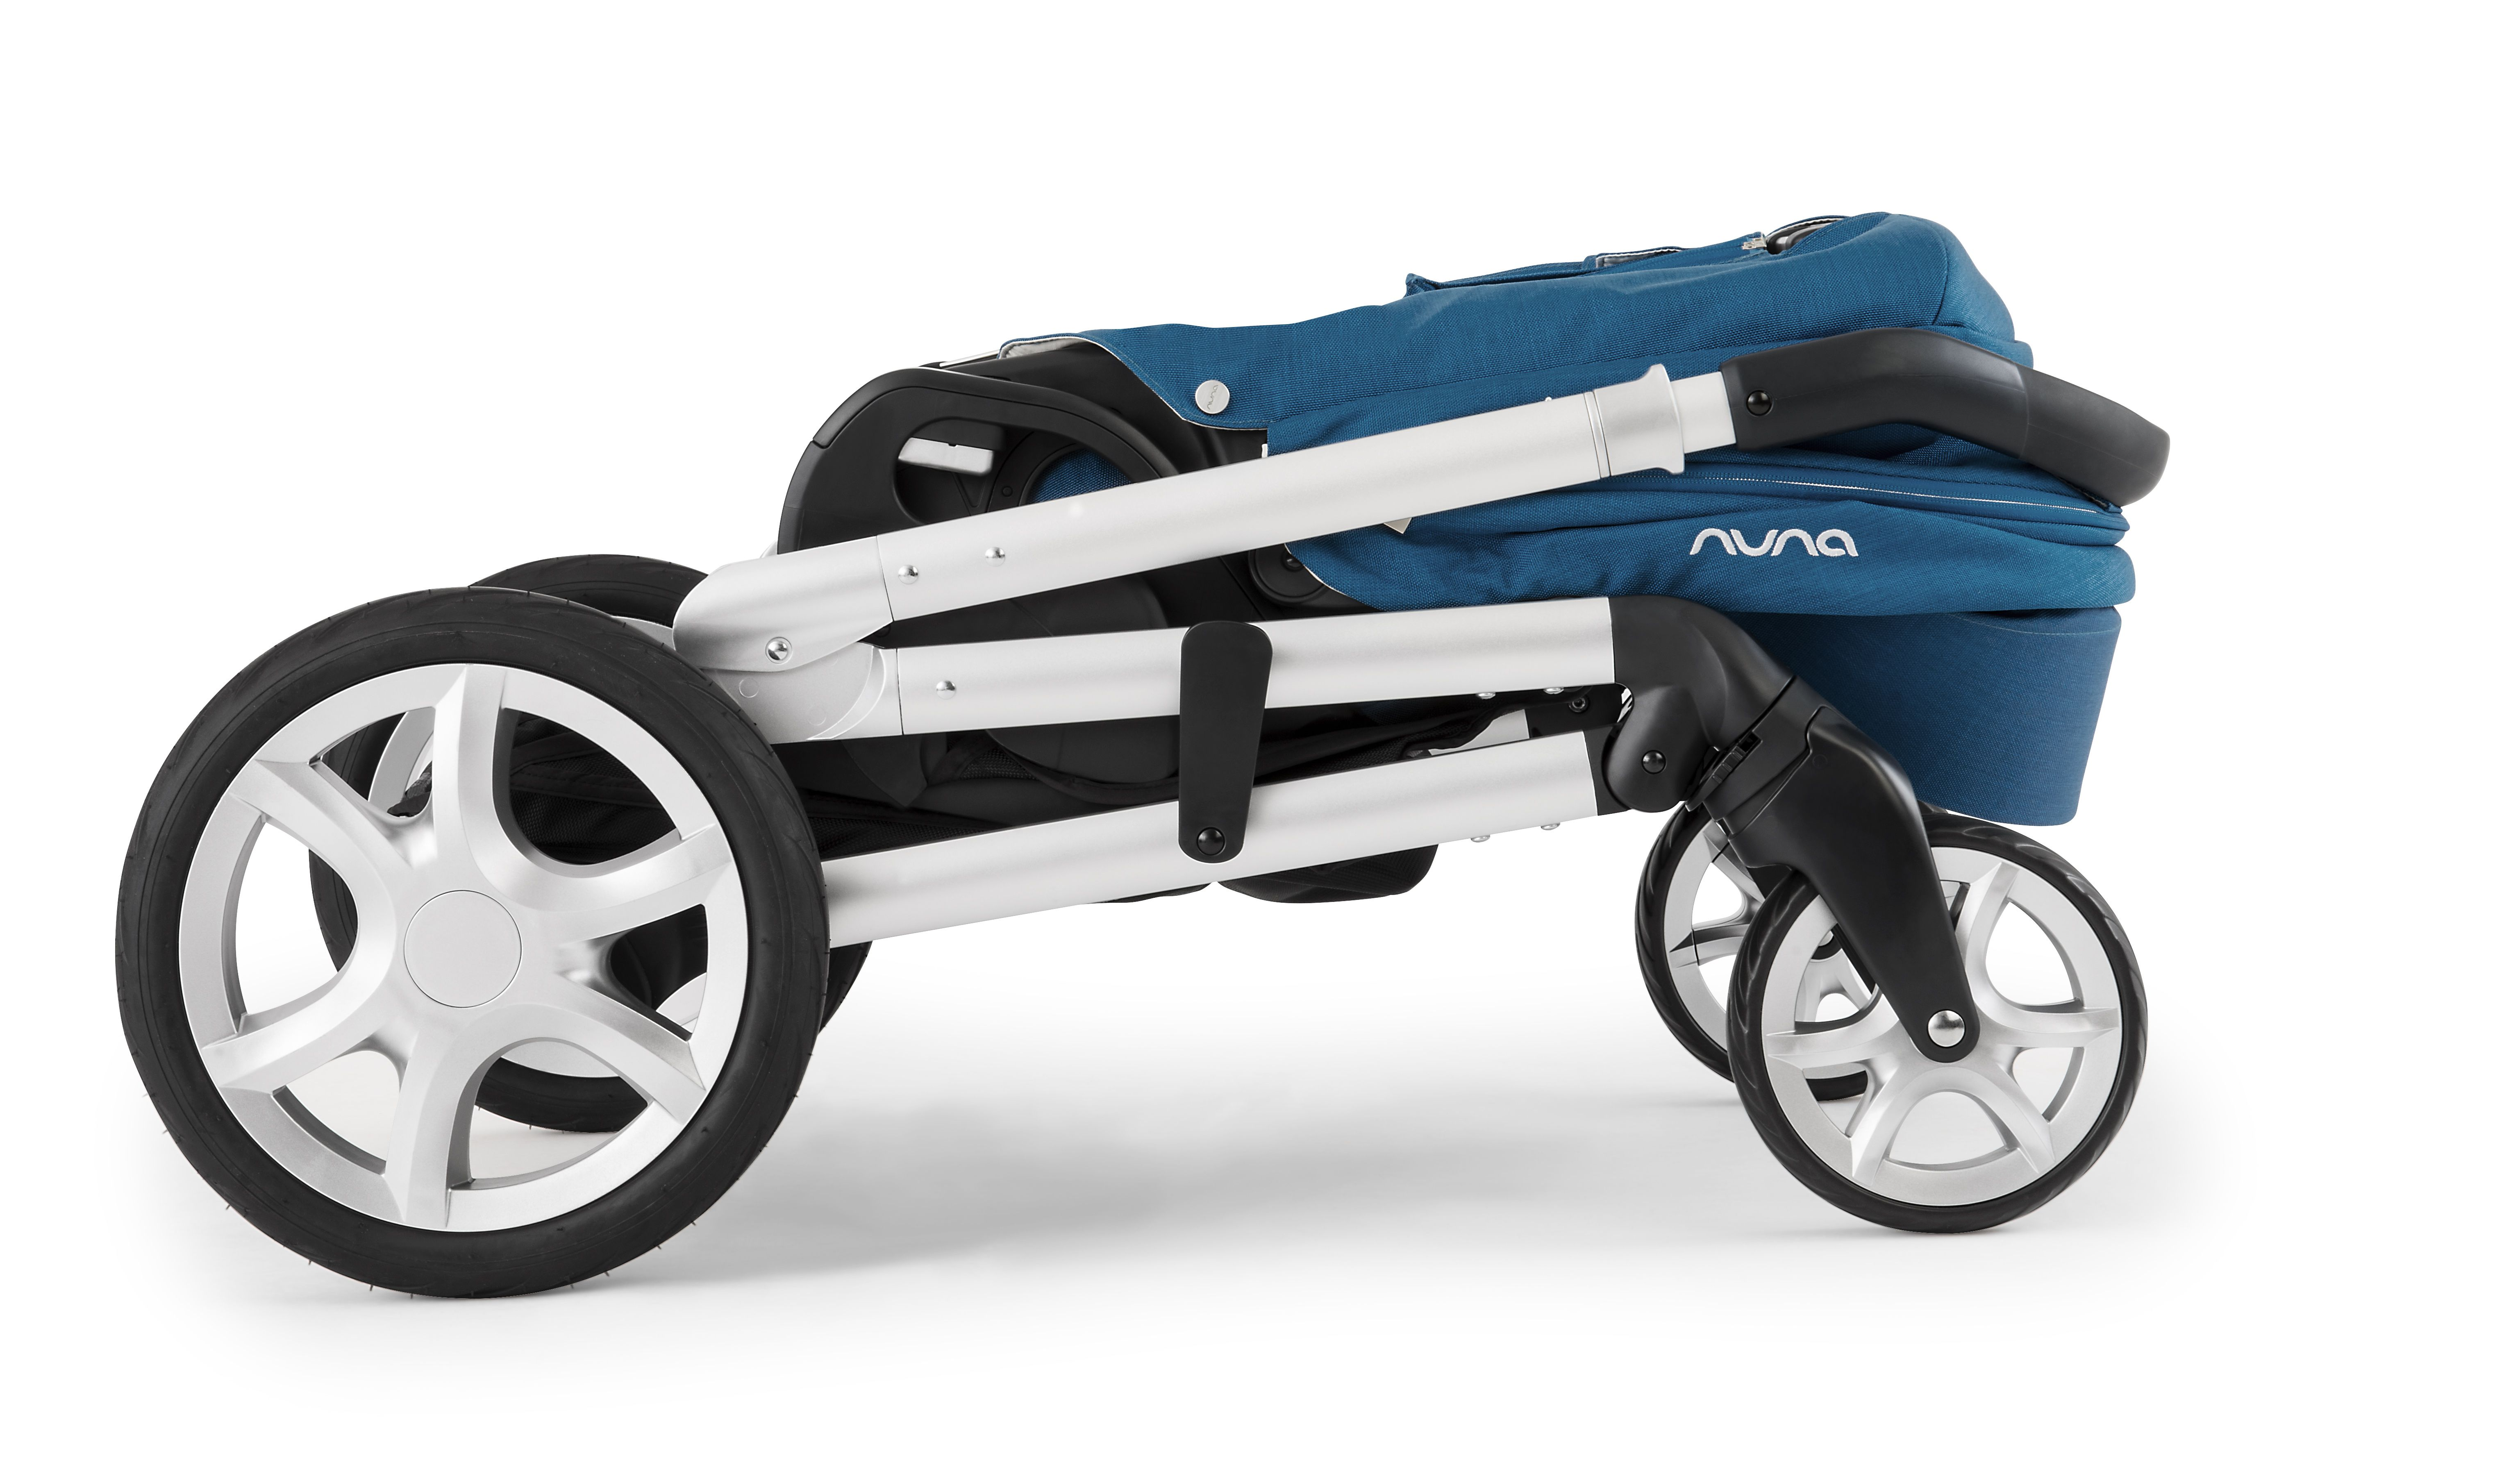 Nuna MIXX A customizable, convertible cruise with a